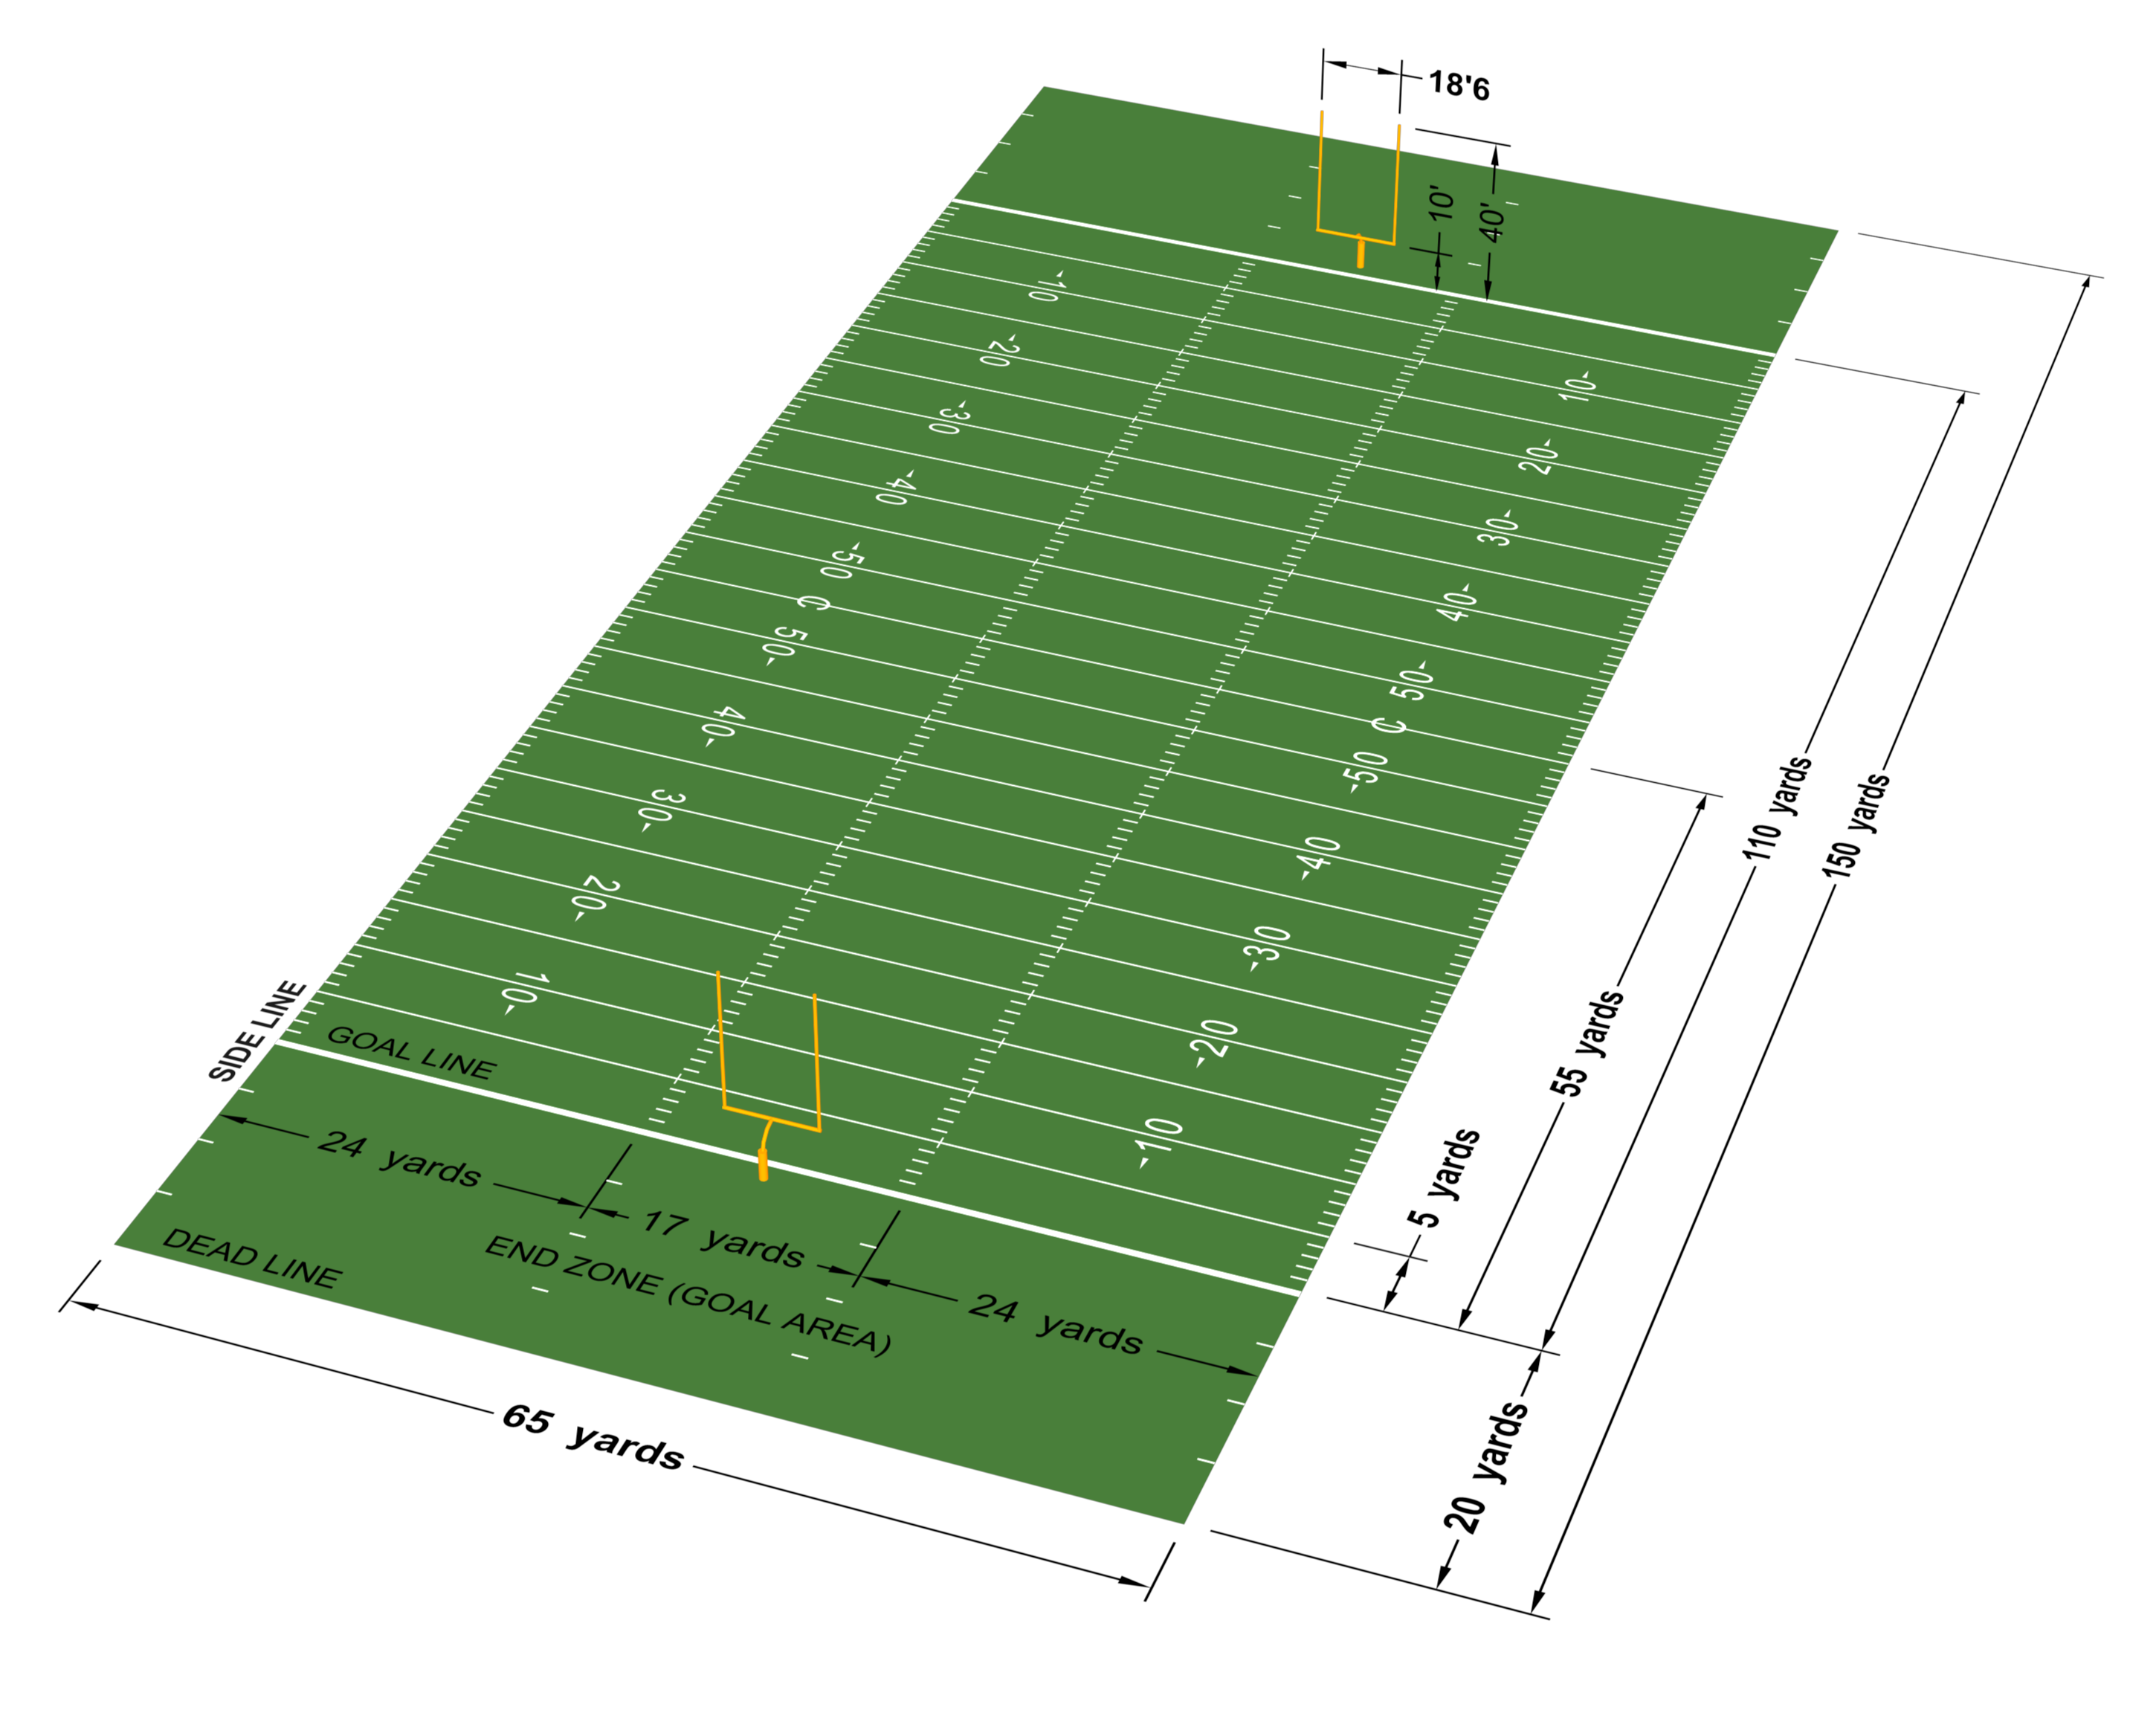 Comparison of Gaelic football and rugby union